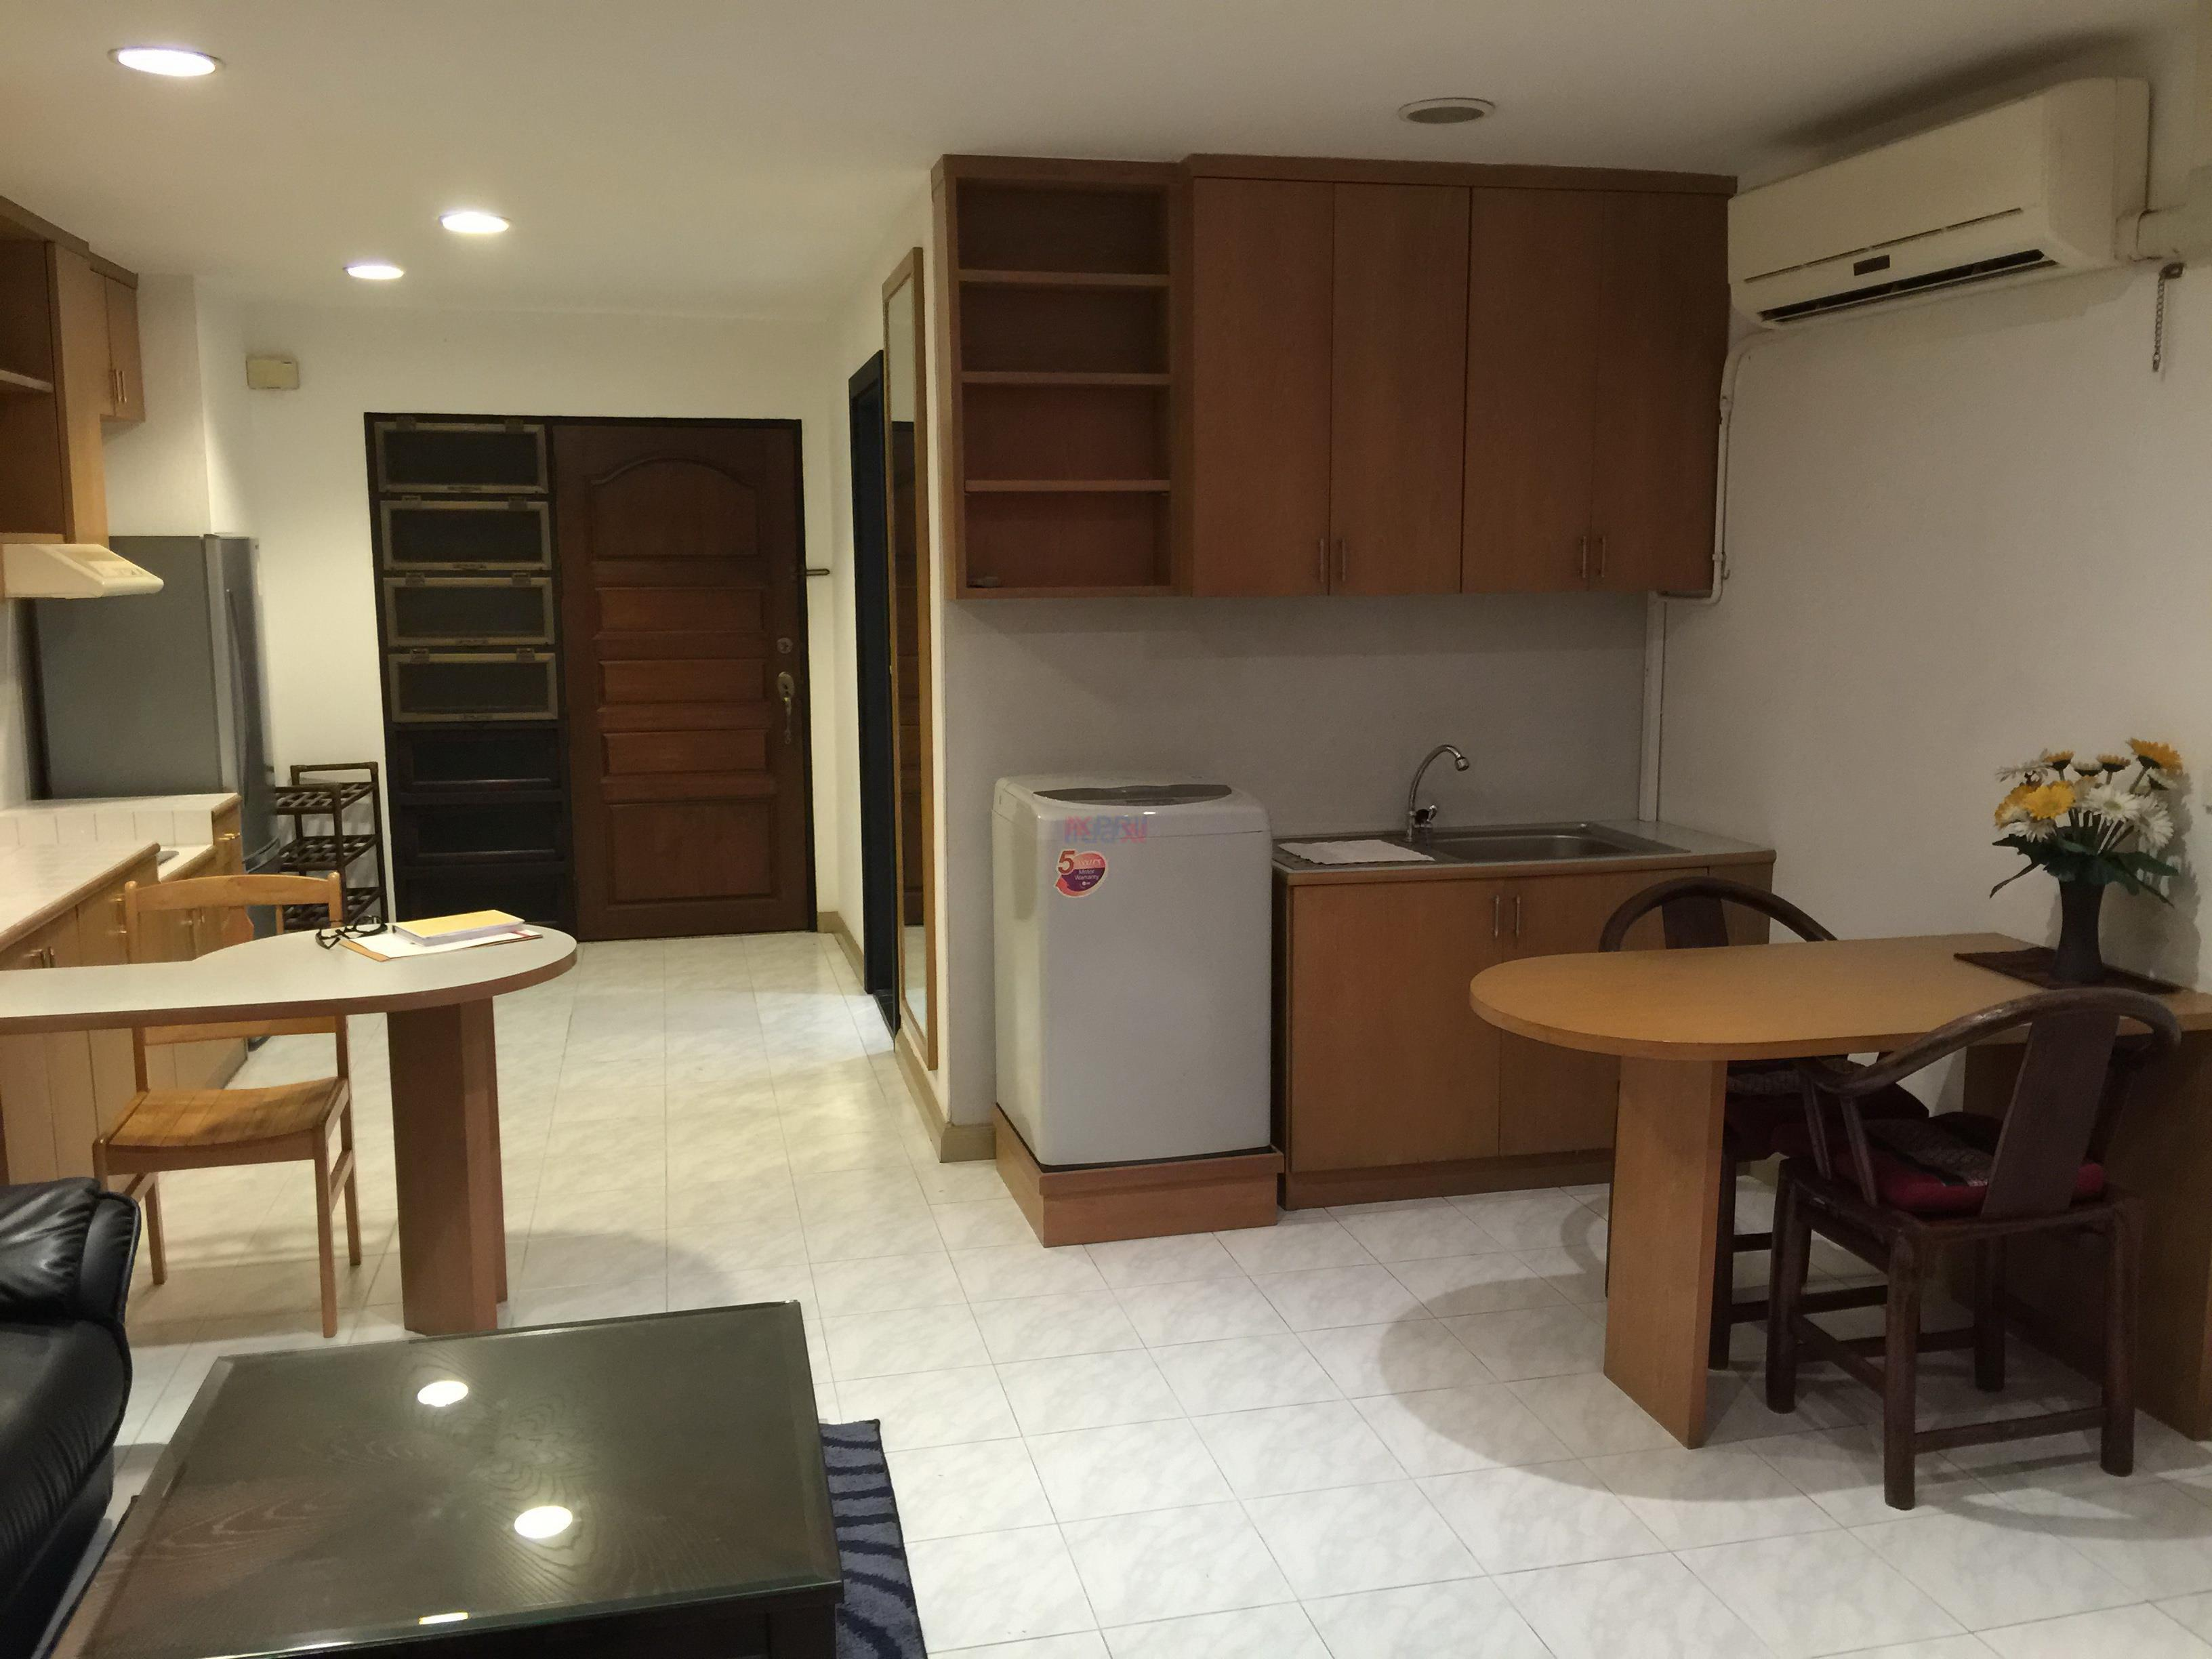 RE/MAX PRIME Agency's CR-BO0071600021 - Rental at Supalai Place Condominium 4